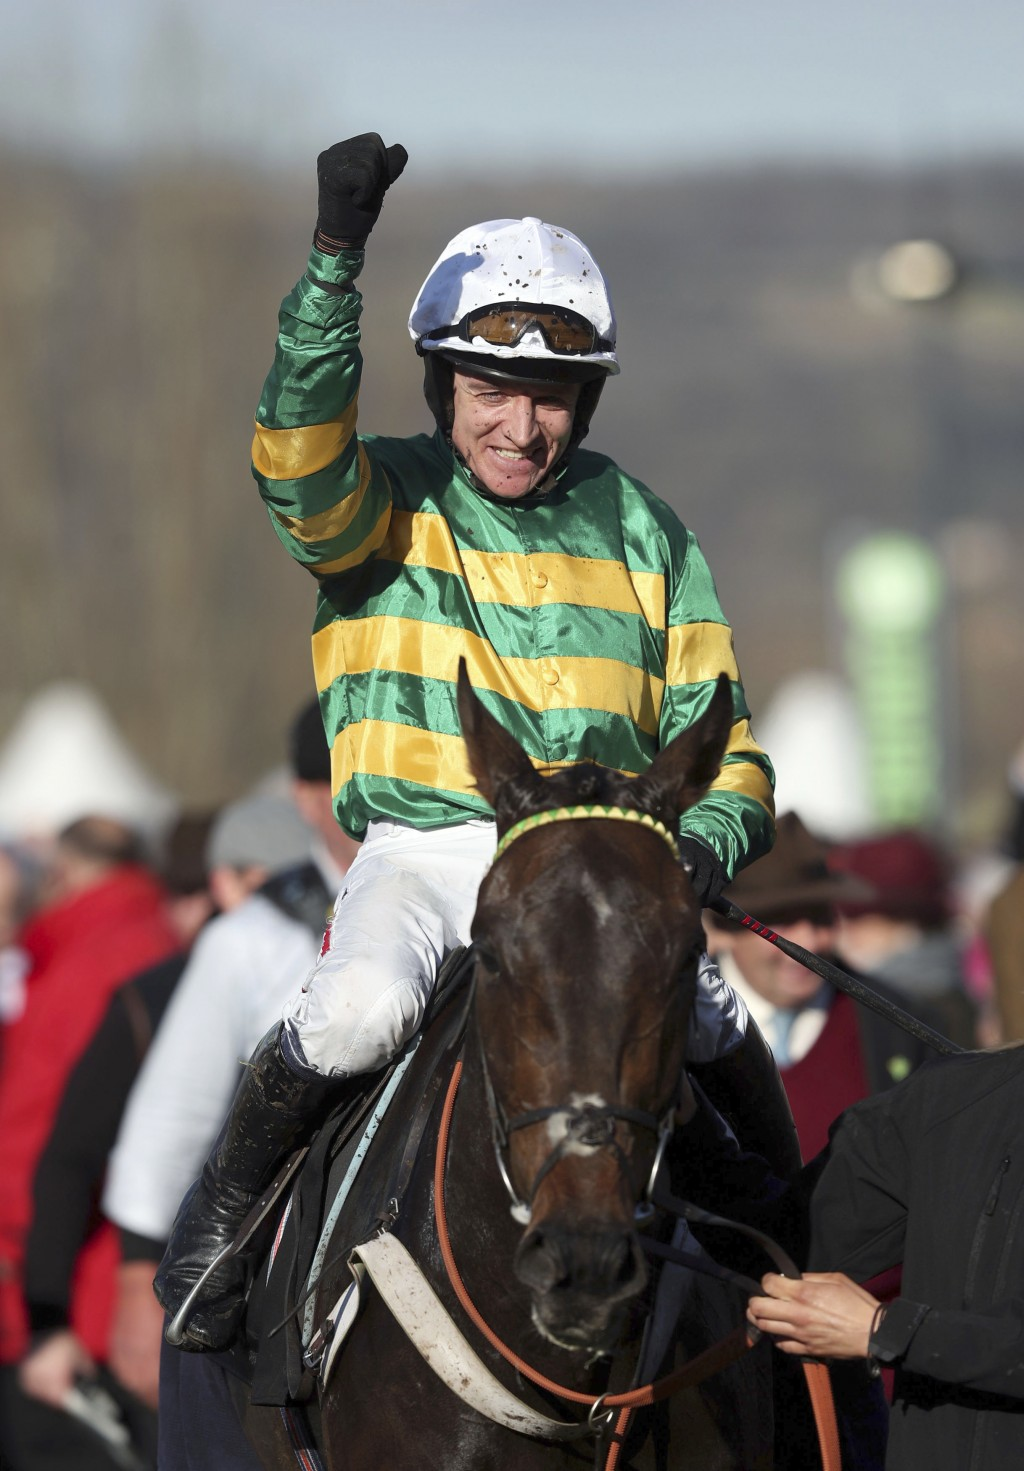 Barry Geraghty celebrates victory in the Champion Hurdle on Buveur D'Air  at Cheltenham Racecourse, Cheltenham England Tuesday March 13, 2018. (David